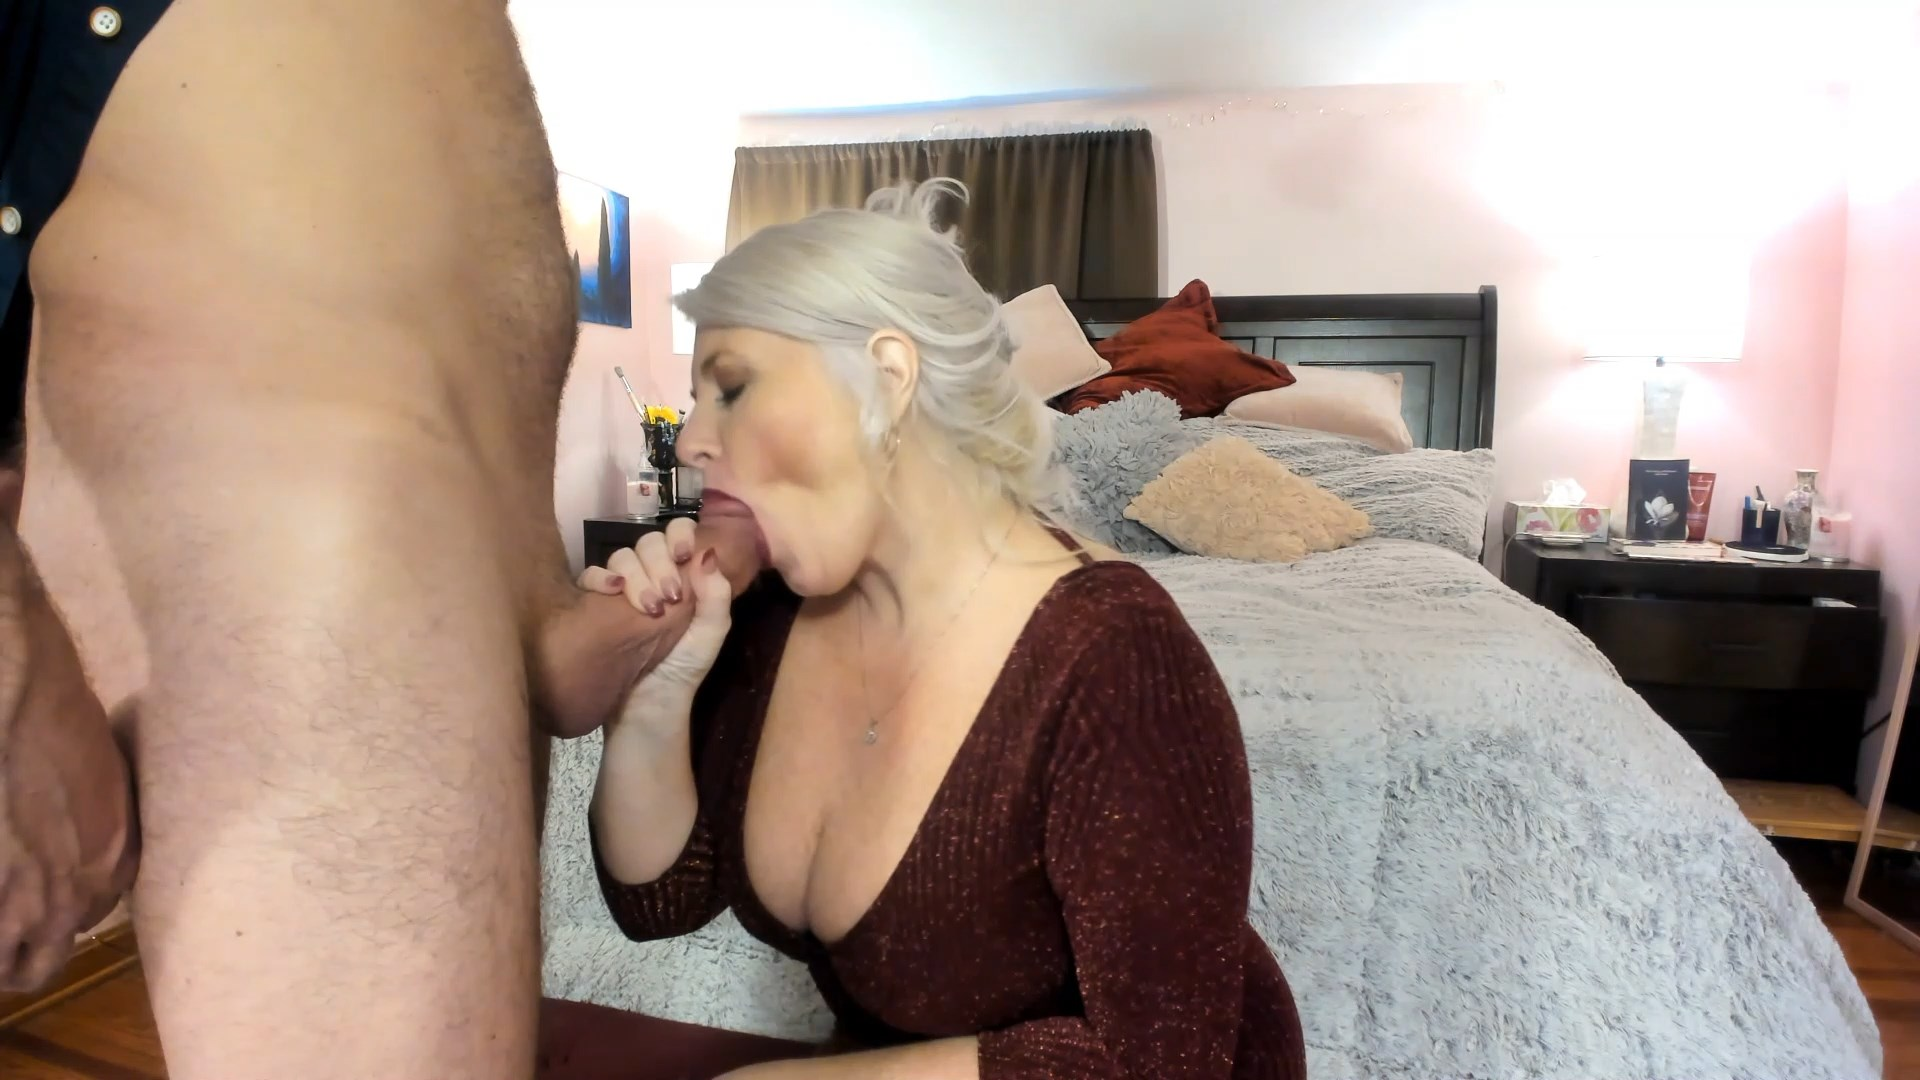 Painted Rose - Mom's Bull / Your Bully: Sissy Cuck So